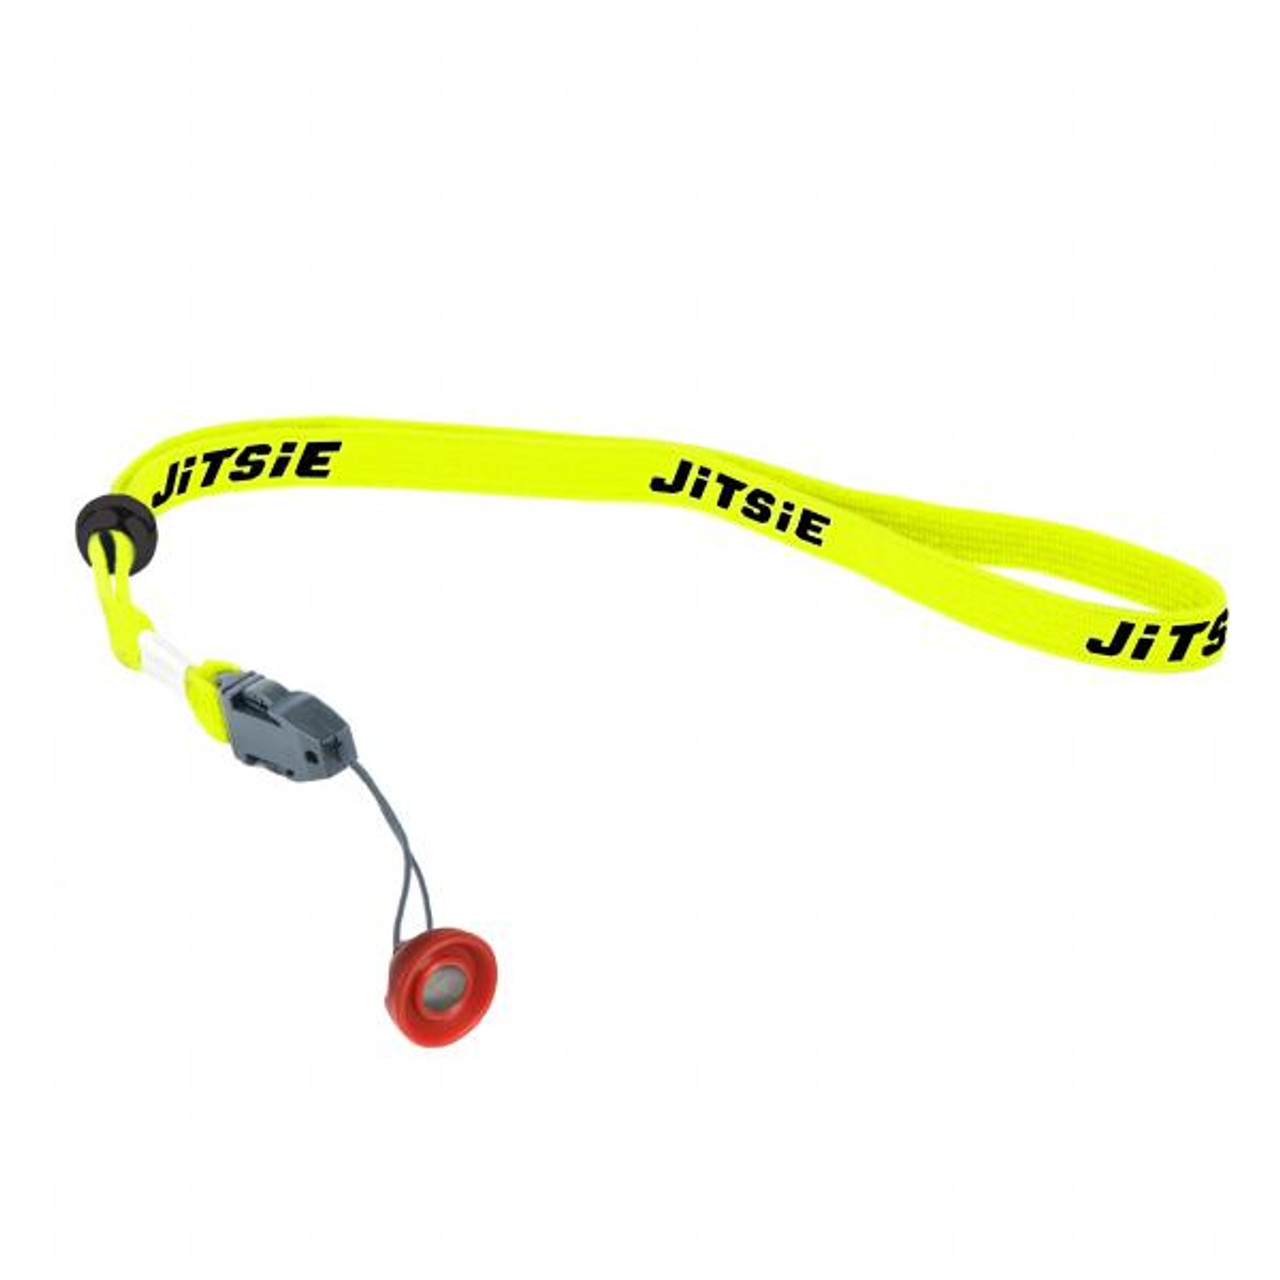 Magnetic lanyard for engine kill button, yellow